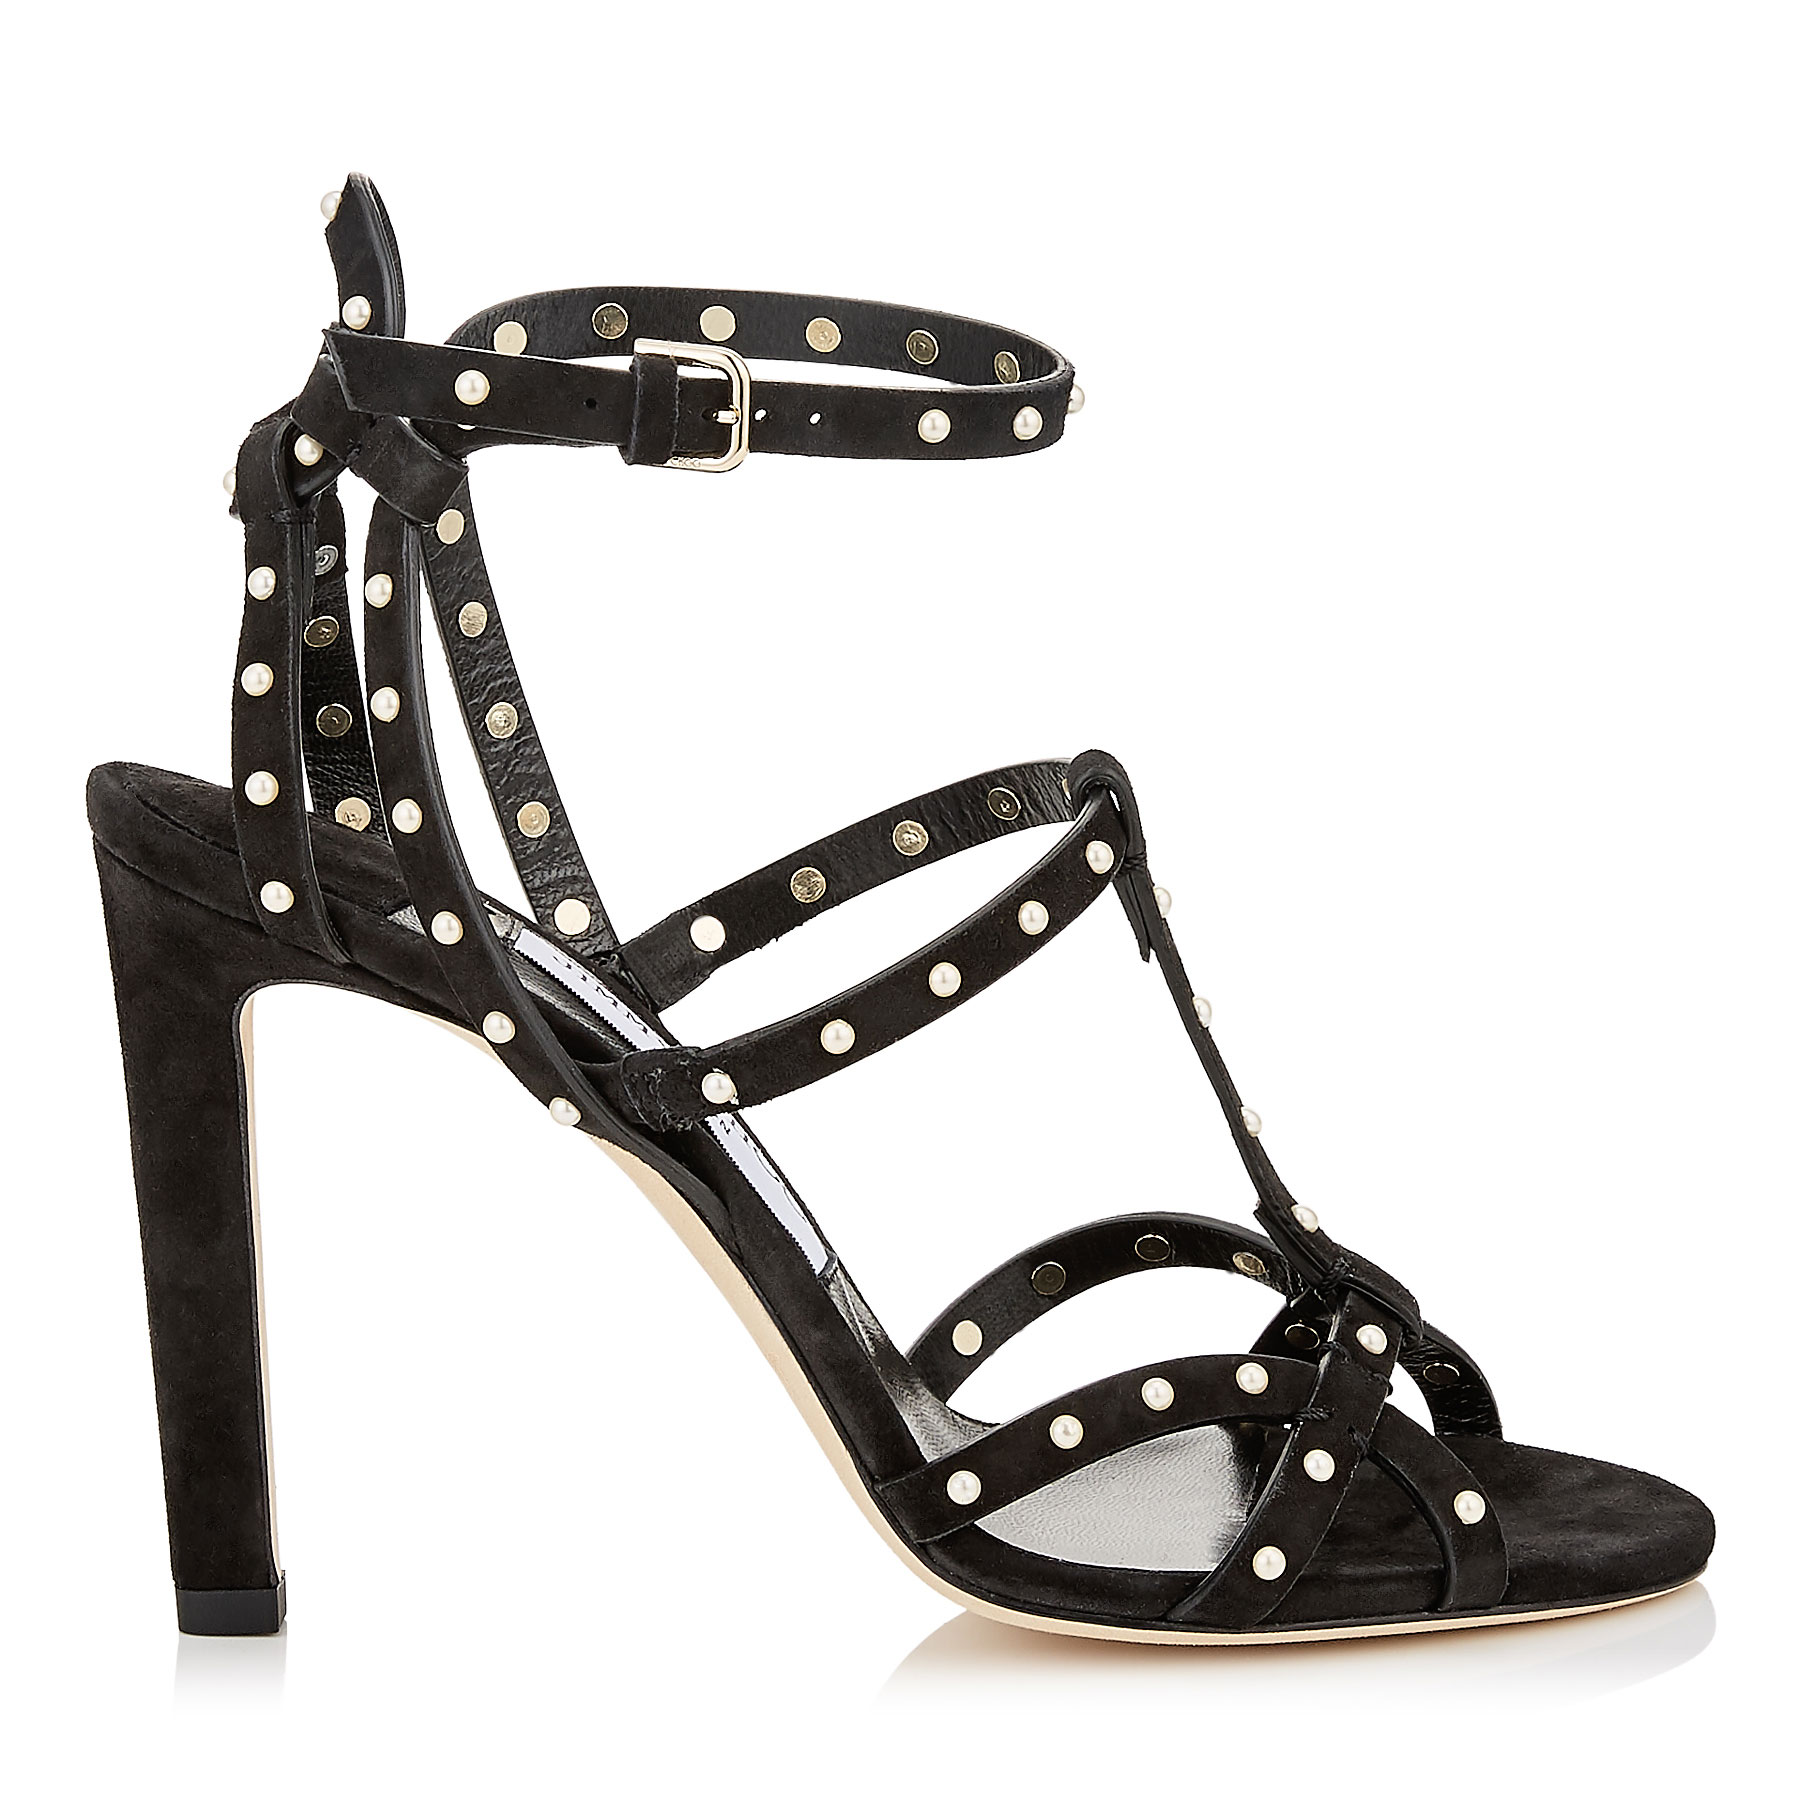 BEVERLY 100 Black Suede Sandals with Pearl Detailing by Jimmy Choo